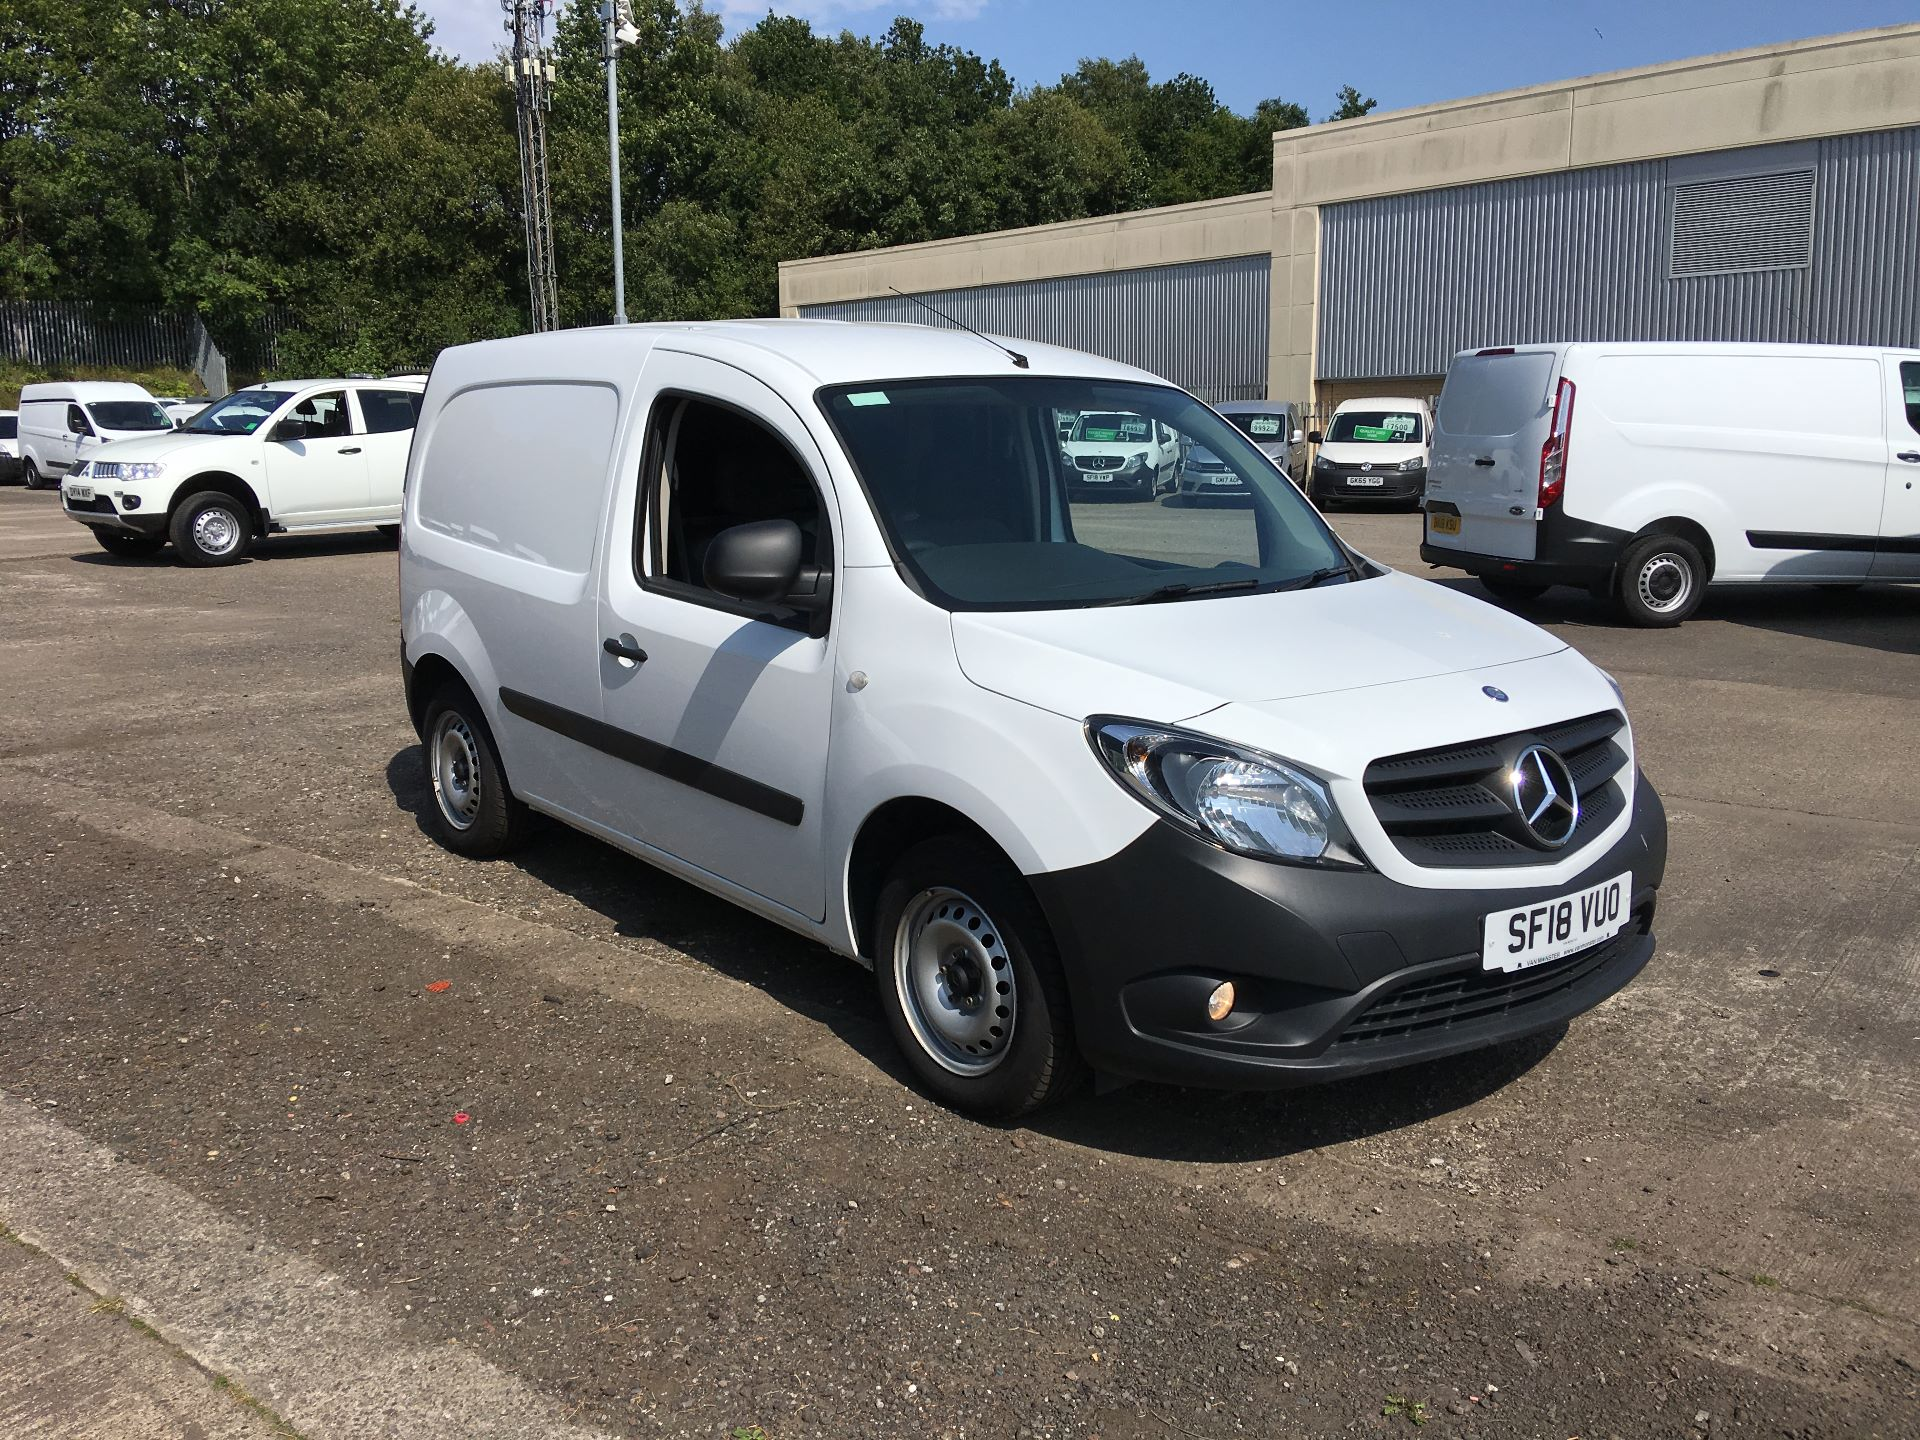 2018 Mercedes-Benz Citan LWB 109 CDI BLUE EFFICIENCY VAN EURO 5/6 (SF18VUO)